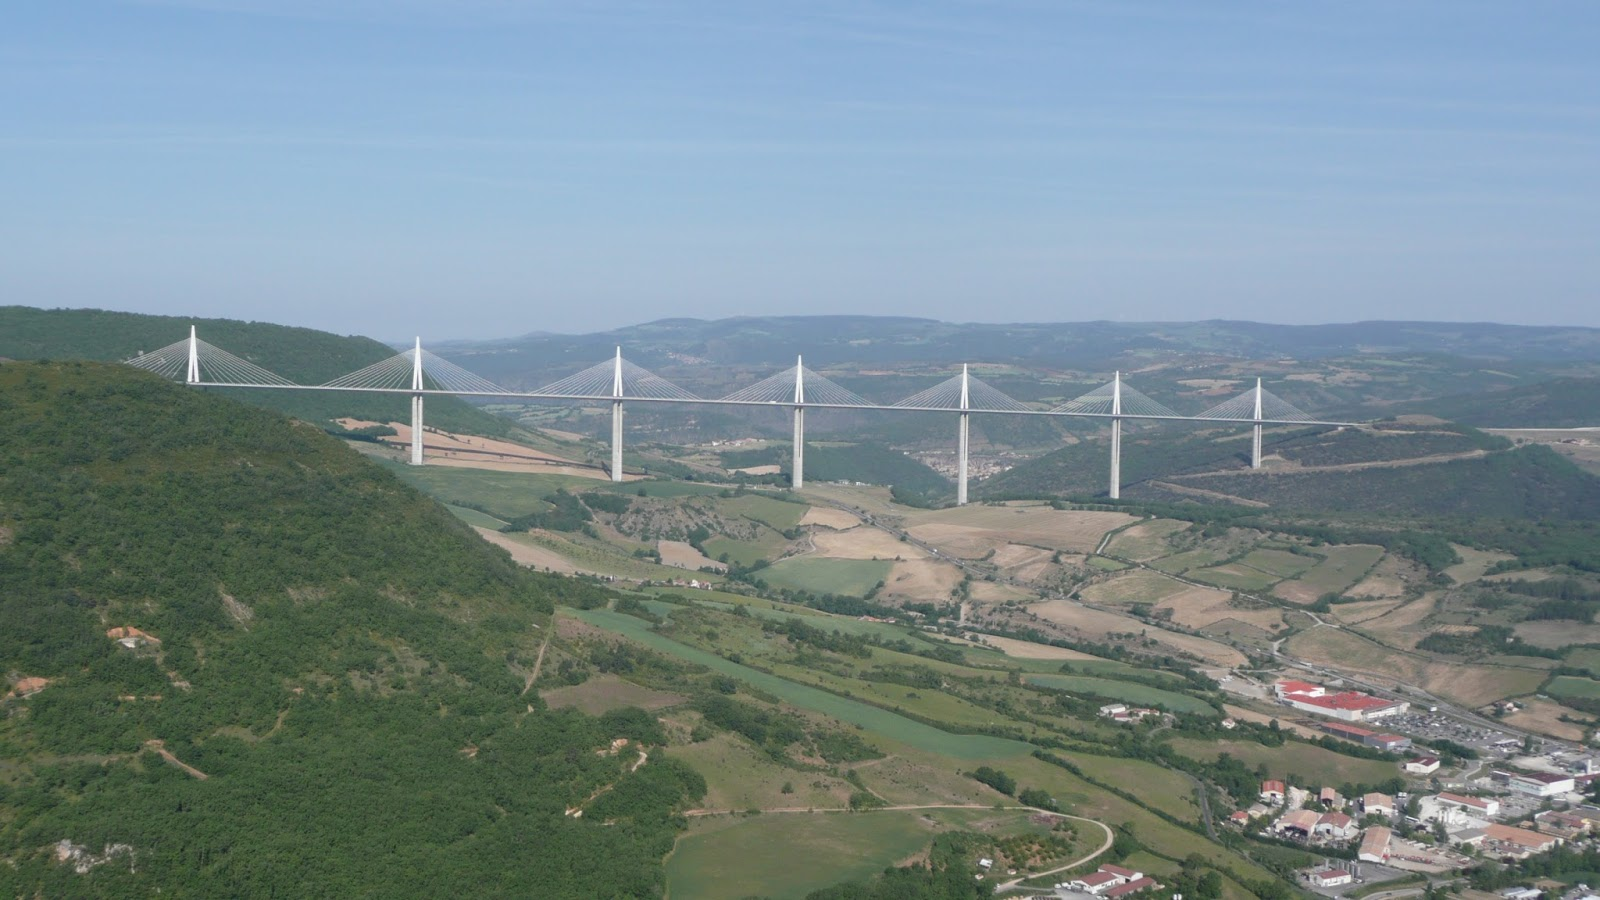 Millau France  city images : Travel Trip Journey: Millau Viaduct France